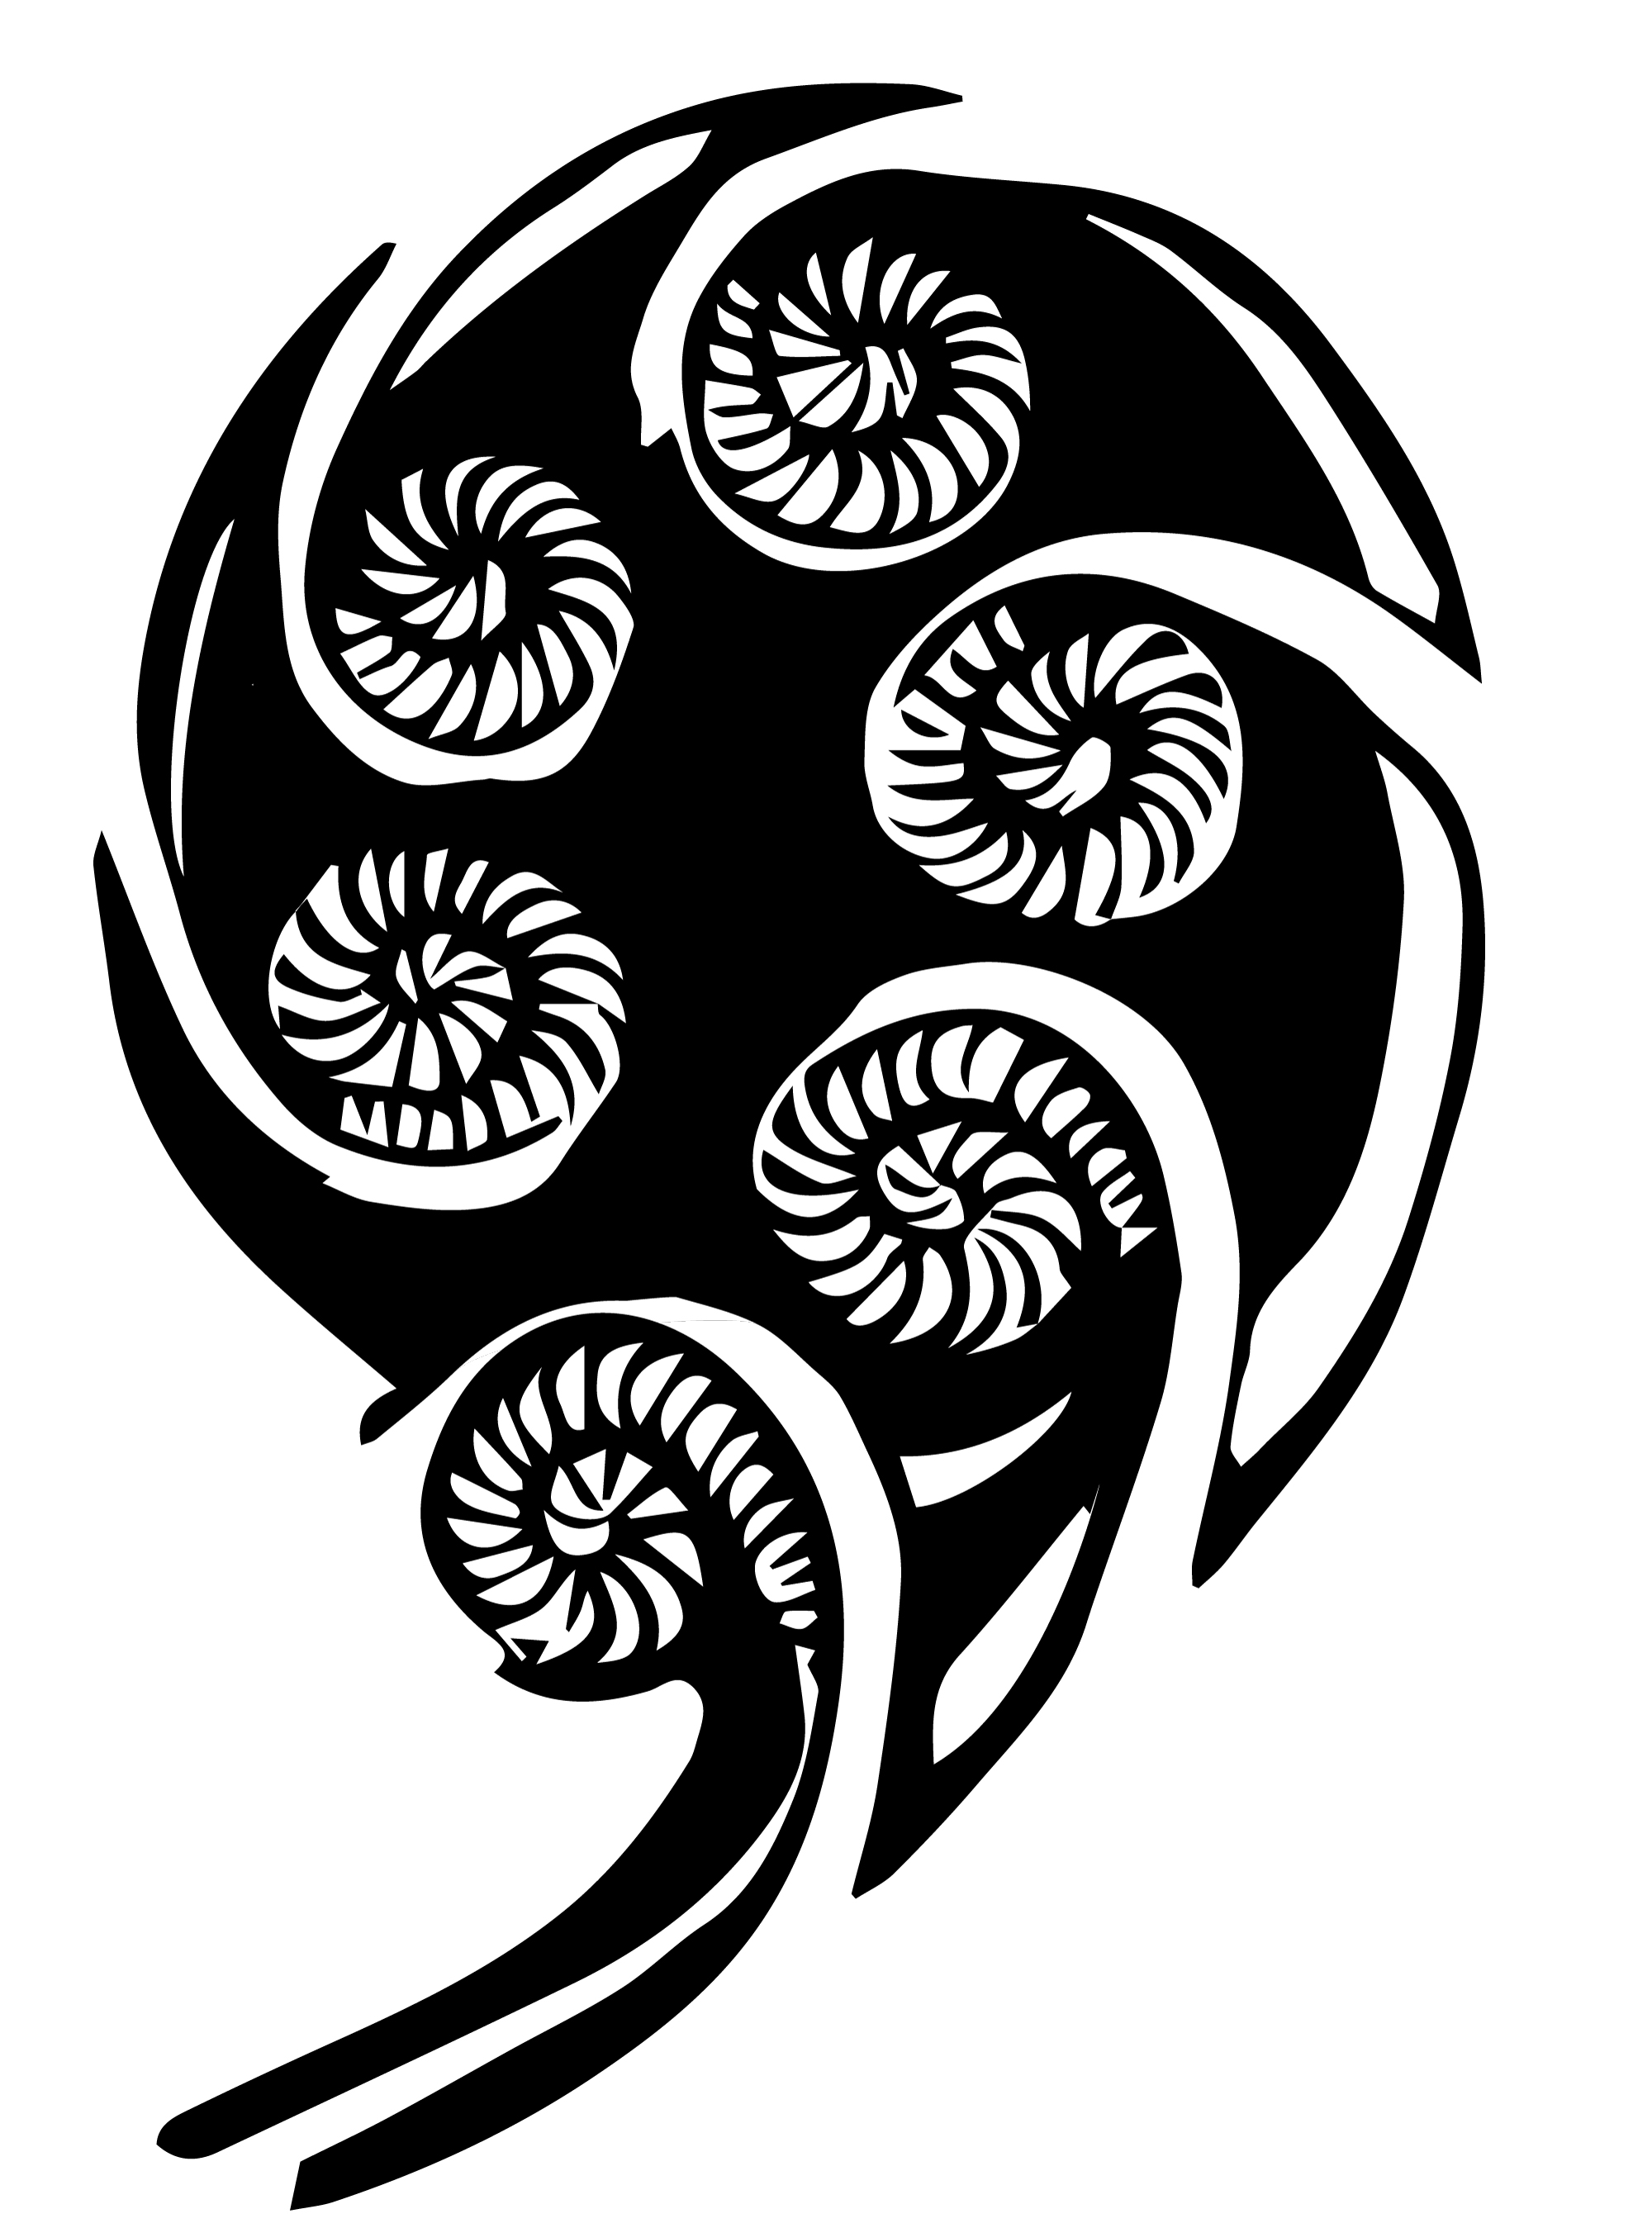 Another koru vector background